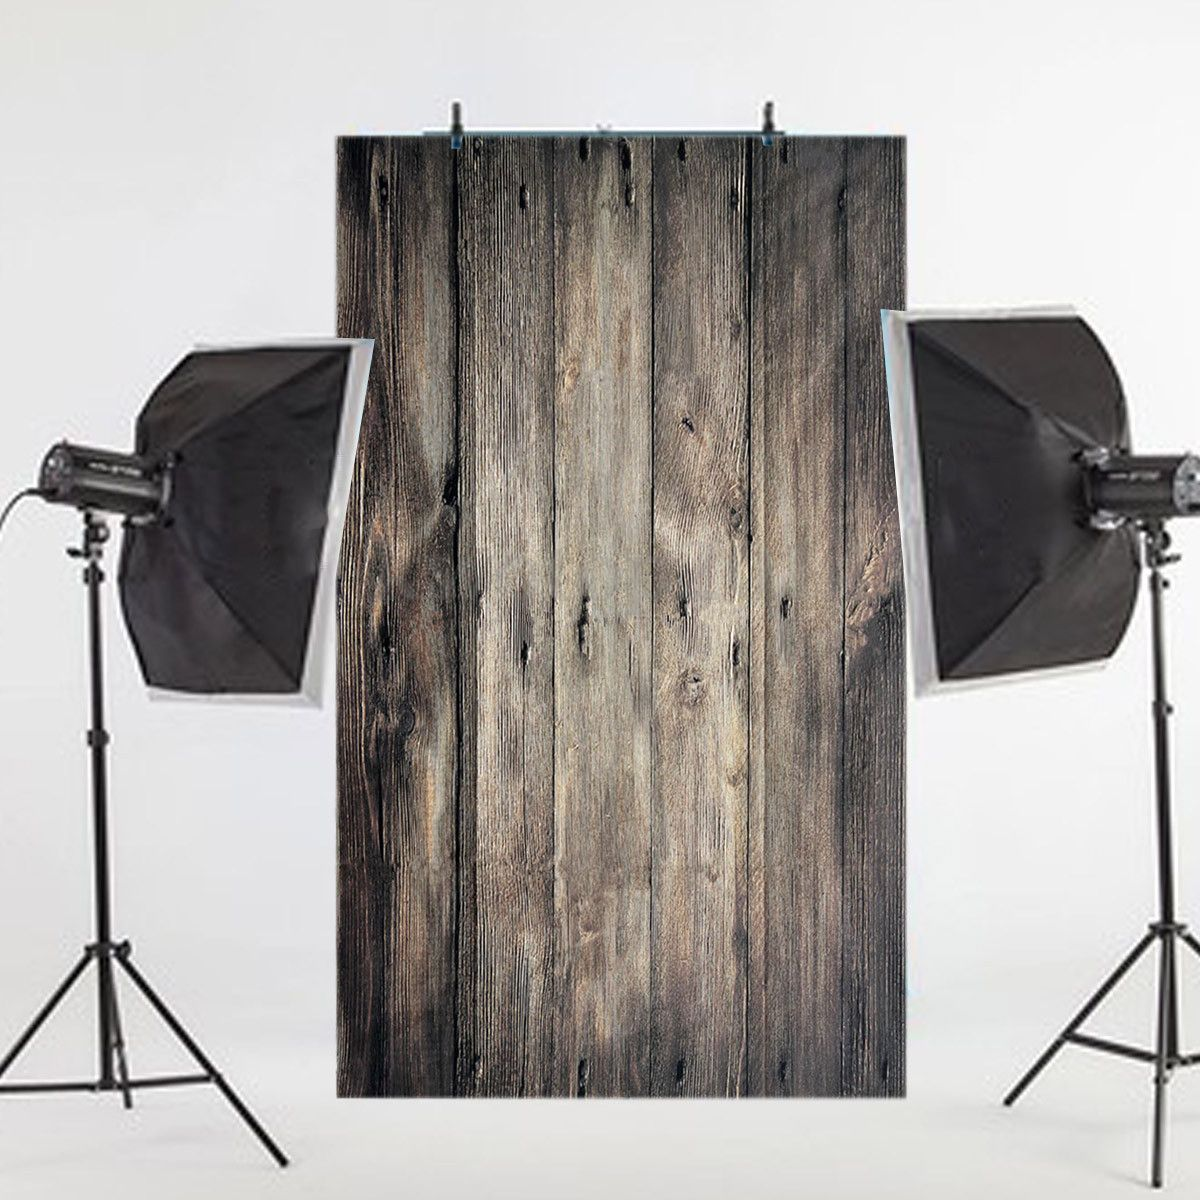 New 3x5FT Vintage Photography Backdrops Wood Vintage Photography Backdrop Backgrounds Studio Wood Background Fotografia photography backdrops bright yellow wood wood brick wall backgrounds for photo studio